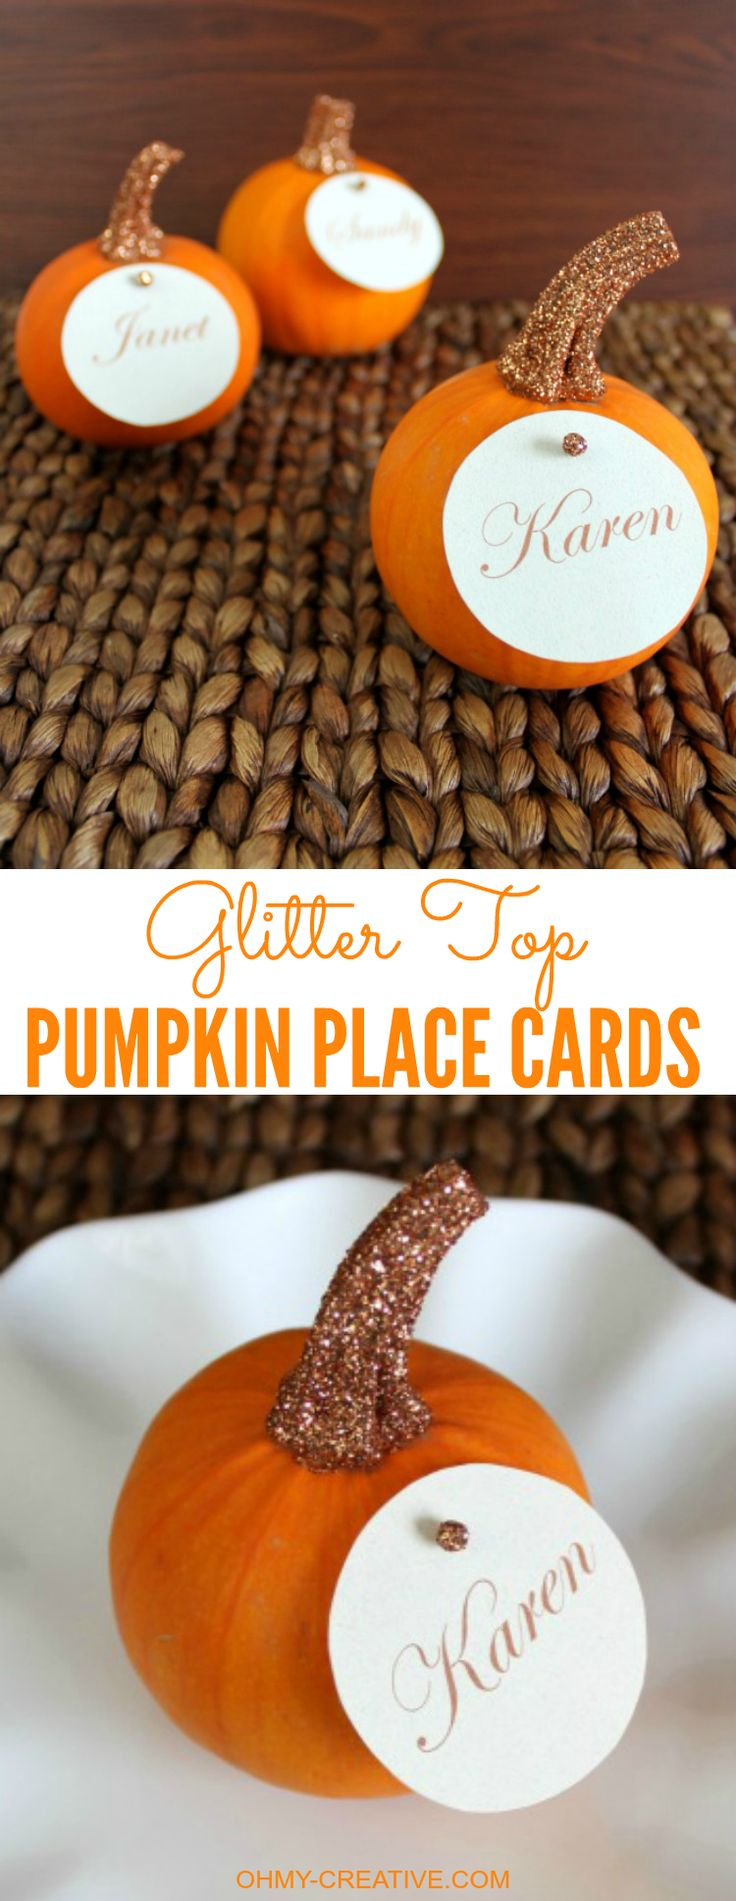 Glitter top pumpkin place cards. Yes!